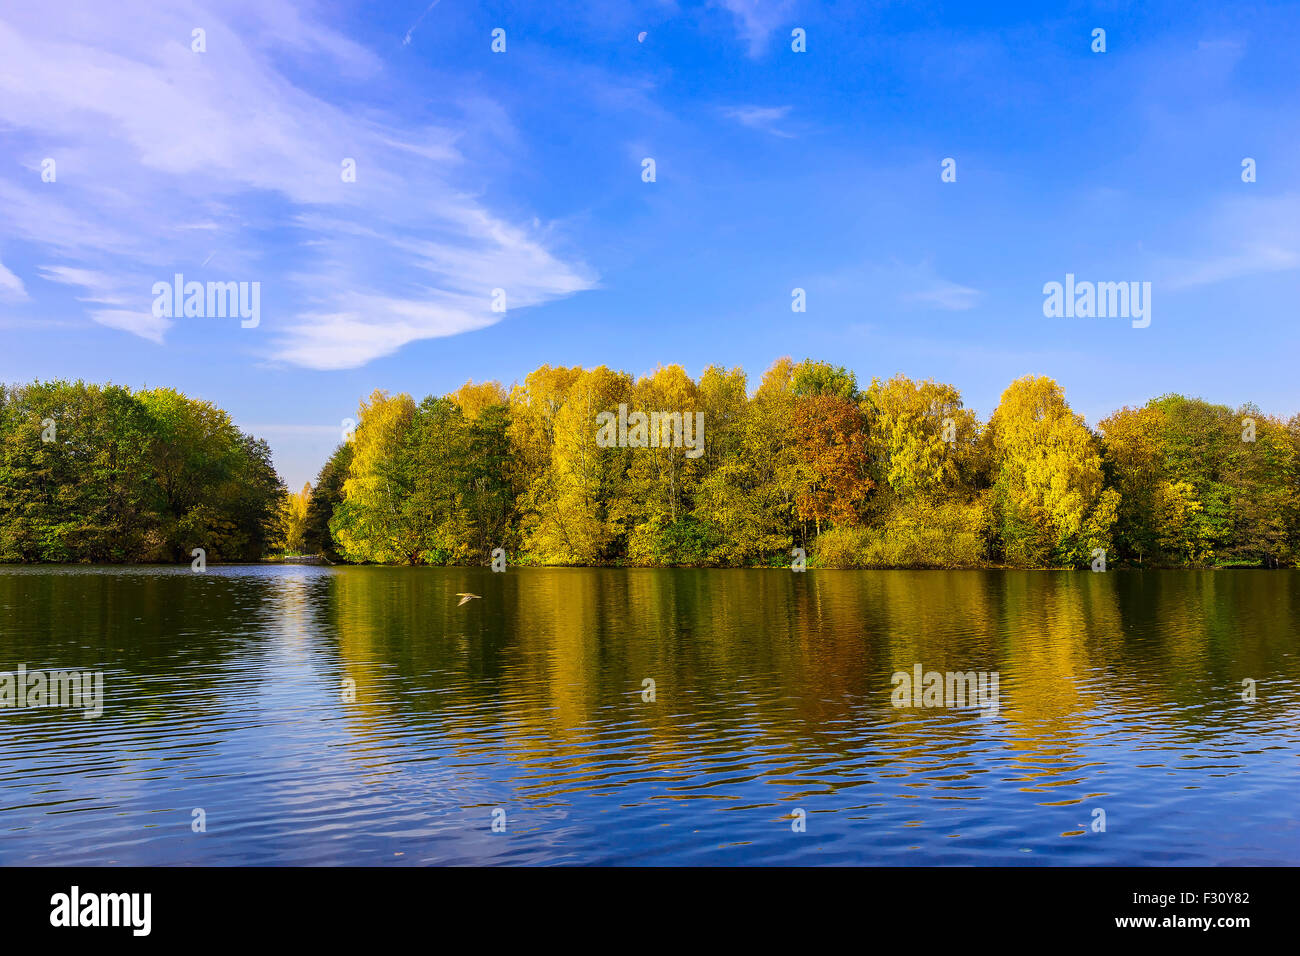 Scenery with Colourful Trees, Cloudy Blue Sky Reflected in the Lake in Autumn Stock Photo